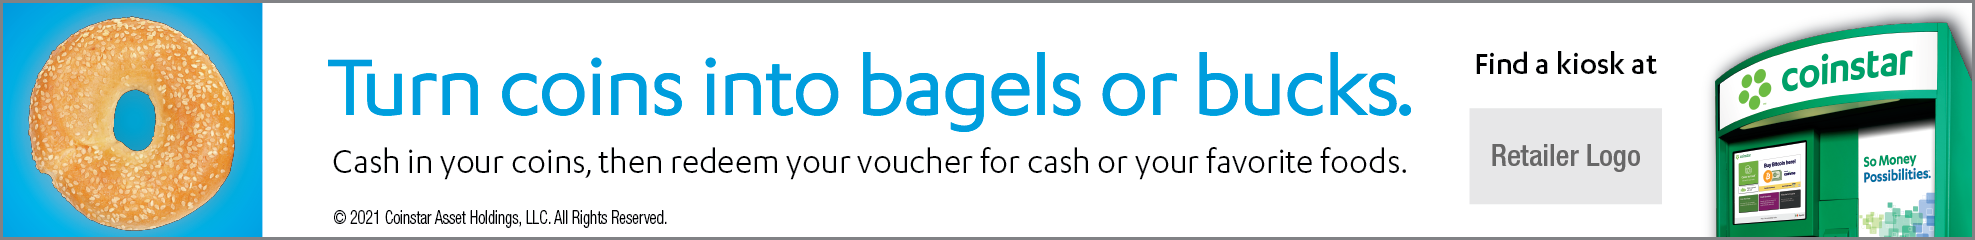 Coinstar Ad. Turn Coins Into Bagels or Bucks. Image of Bagel. To obtain, click Accept Terms of Use and Download button.